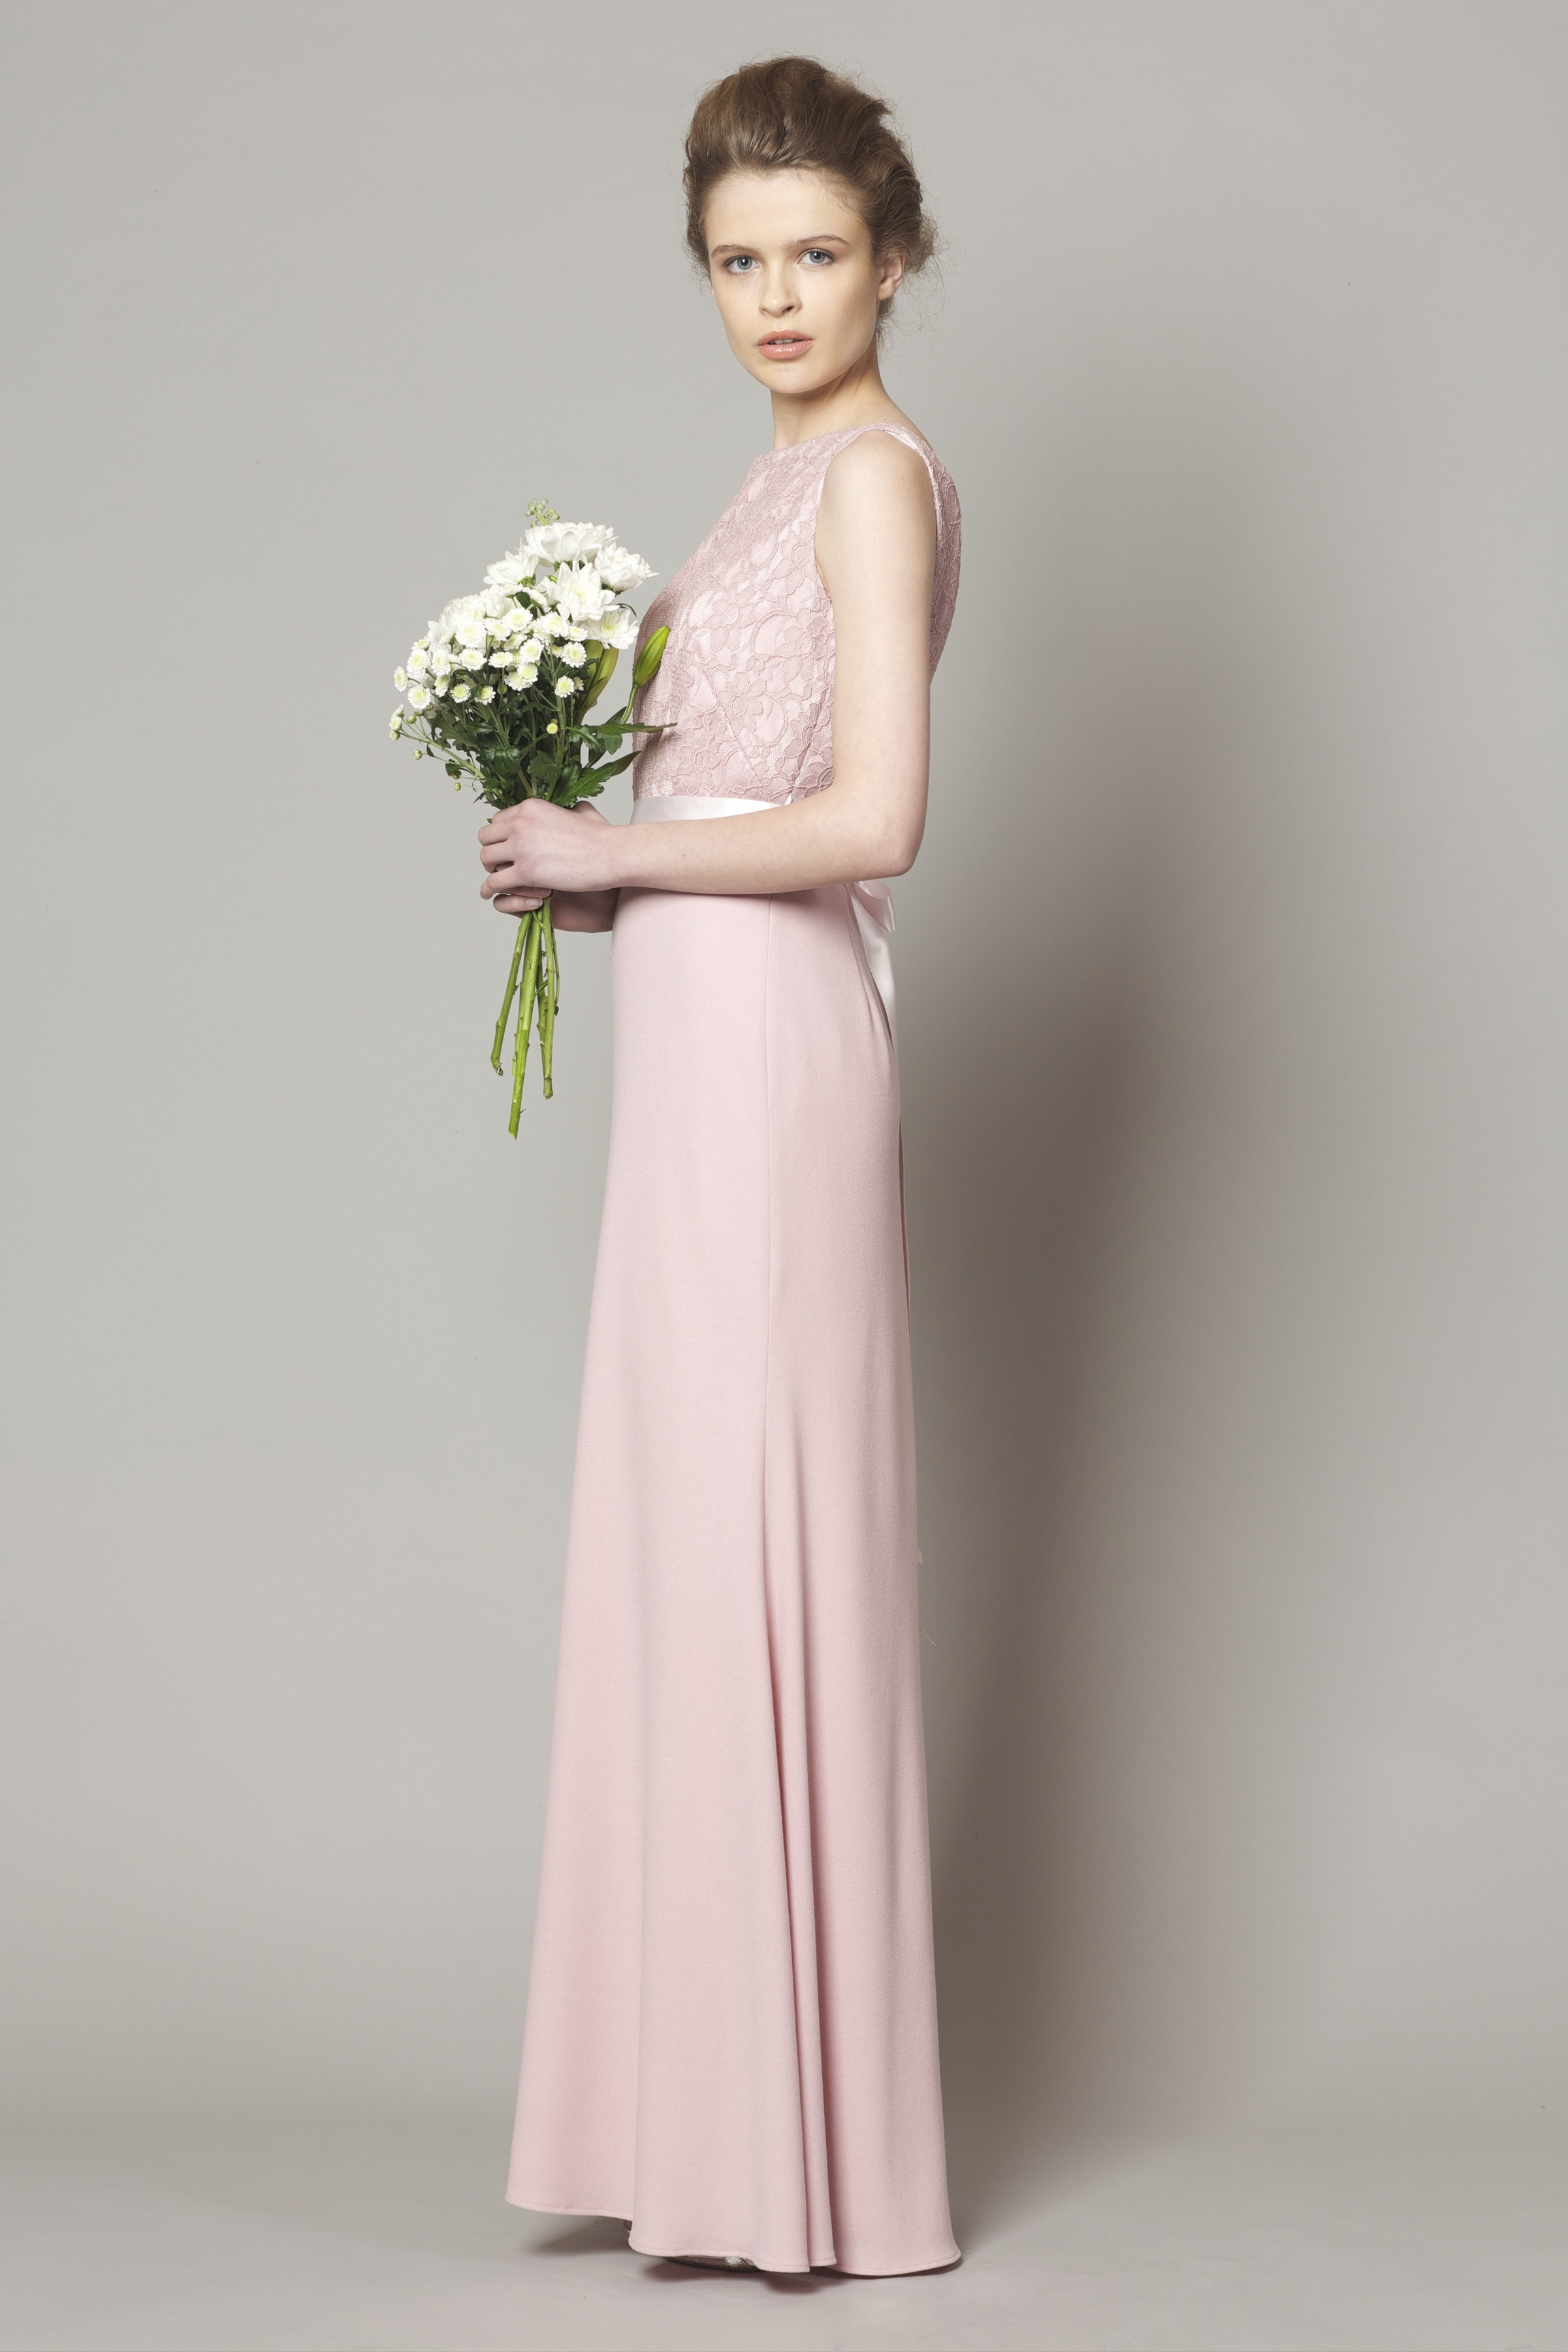 Rose Pink Lace Top Style Dc1176 Bridesmaid Evening Debs Dresses From Dresscode: Salmon Pink Wedding Dress At Websimilar.org